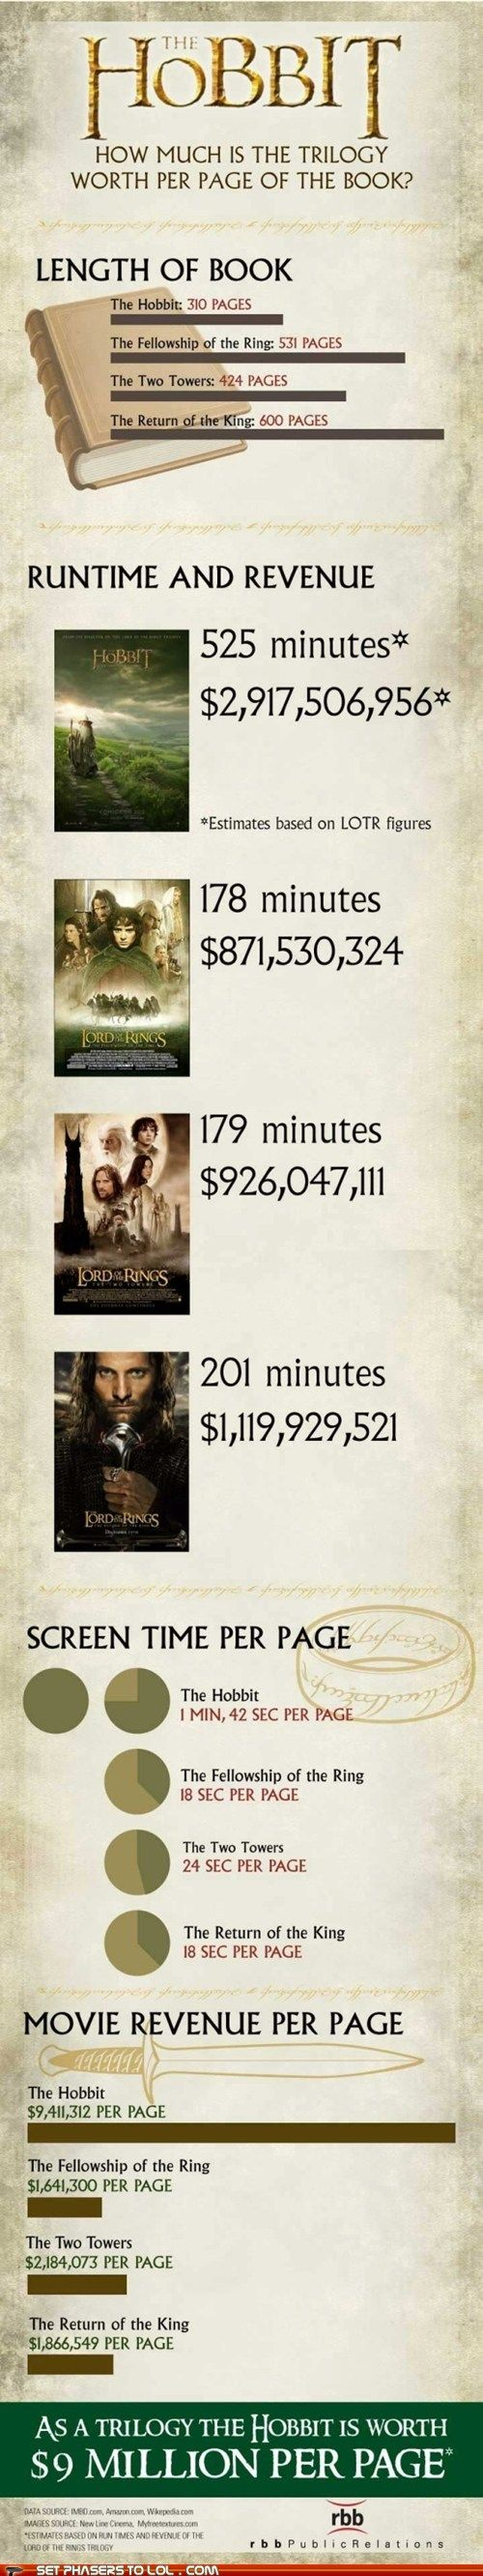 sci fi fantasy - How Much Money Per Page is Tolkien's Writing Worth at the Box Office? Oh WOW.